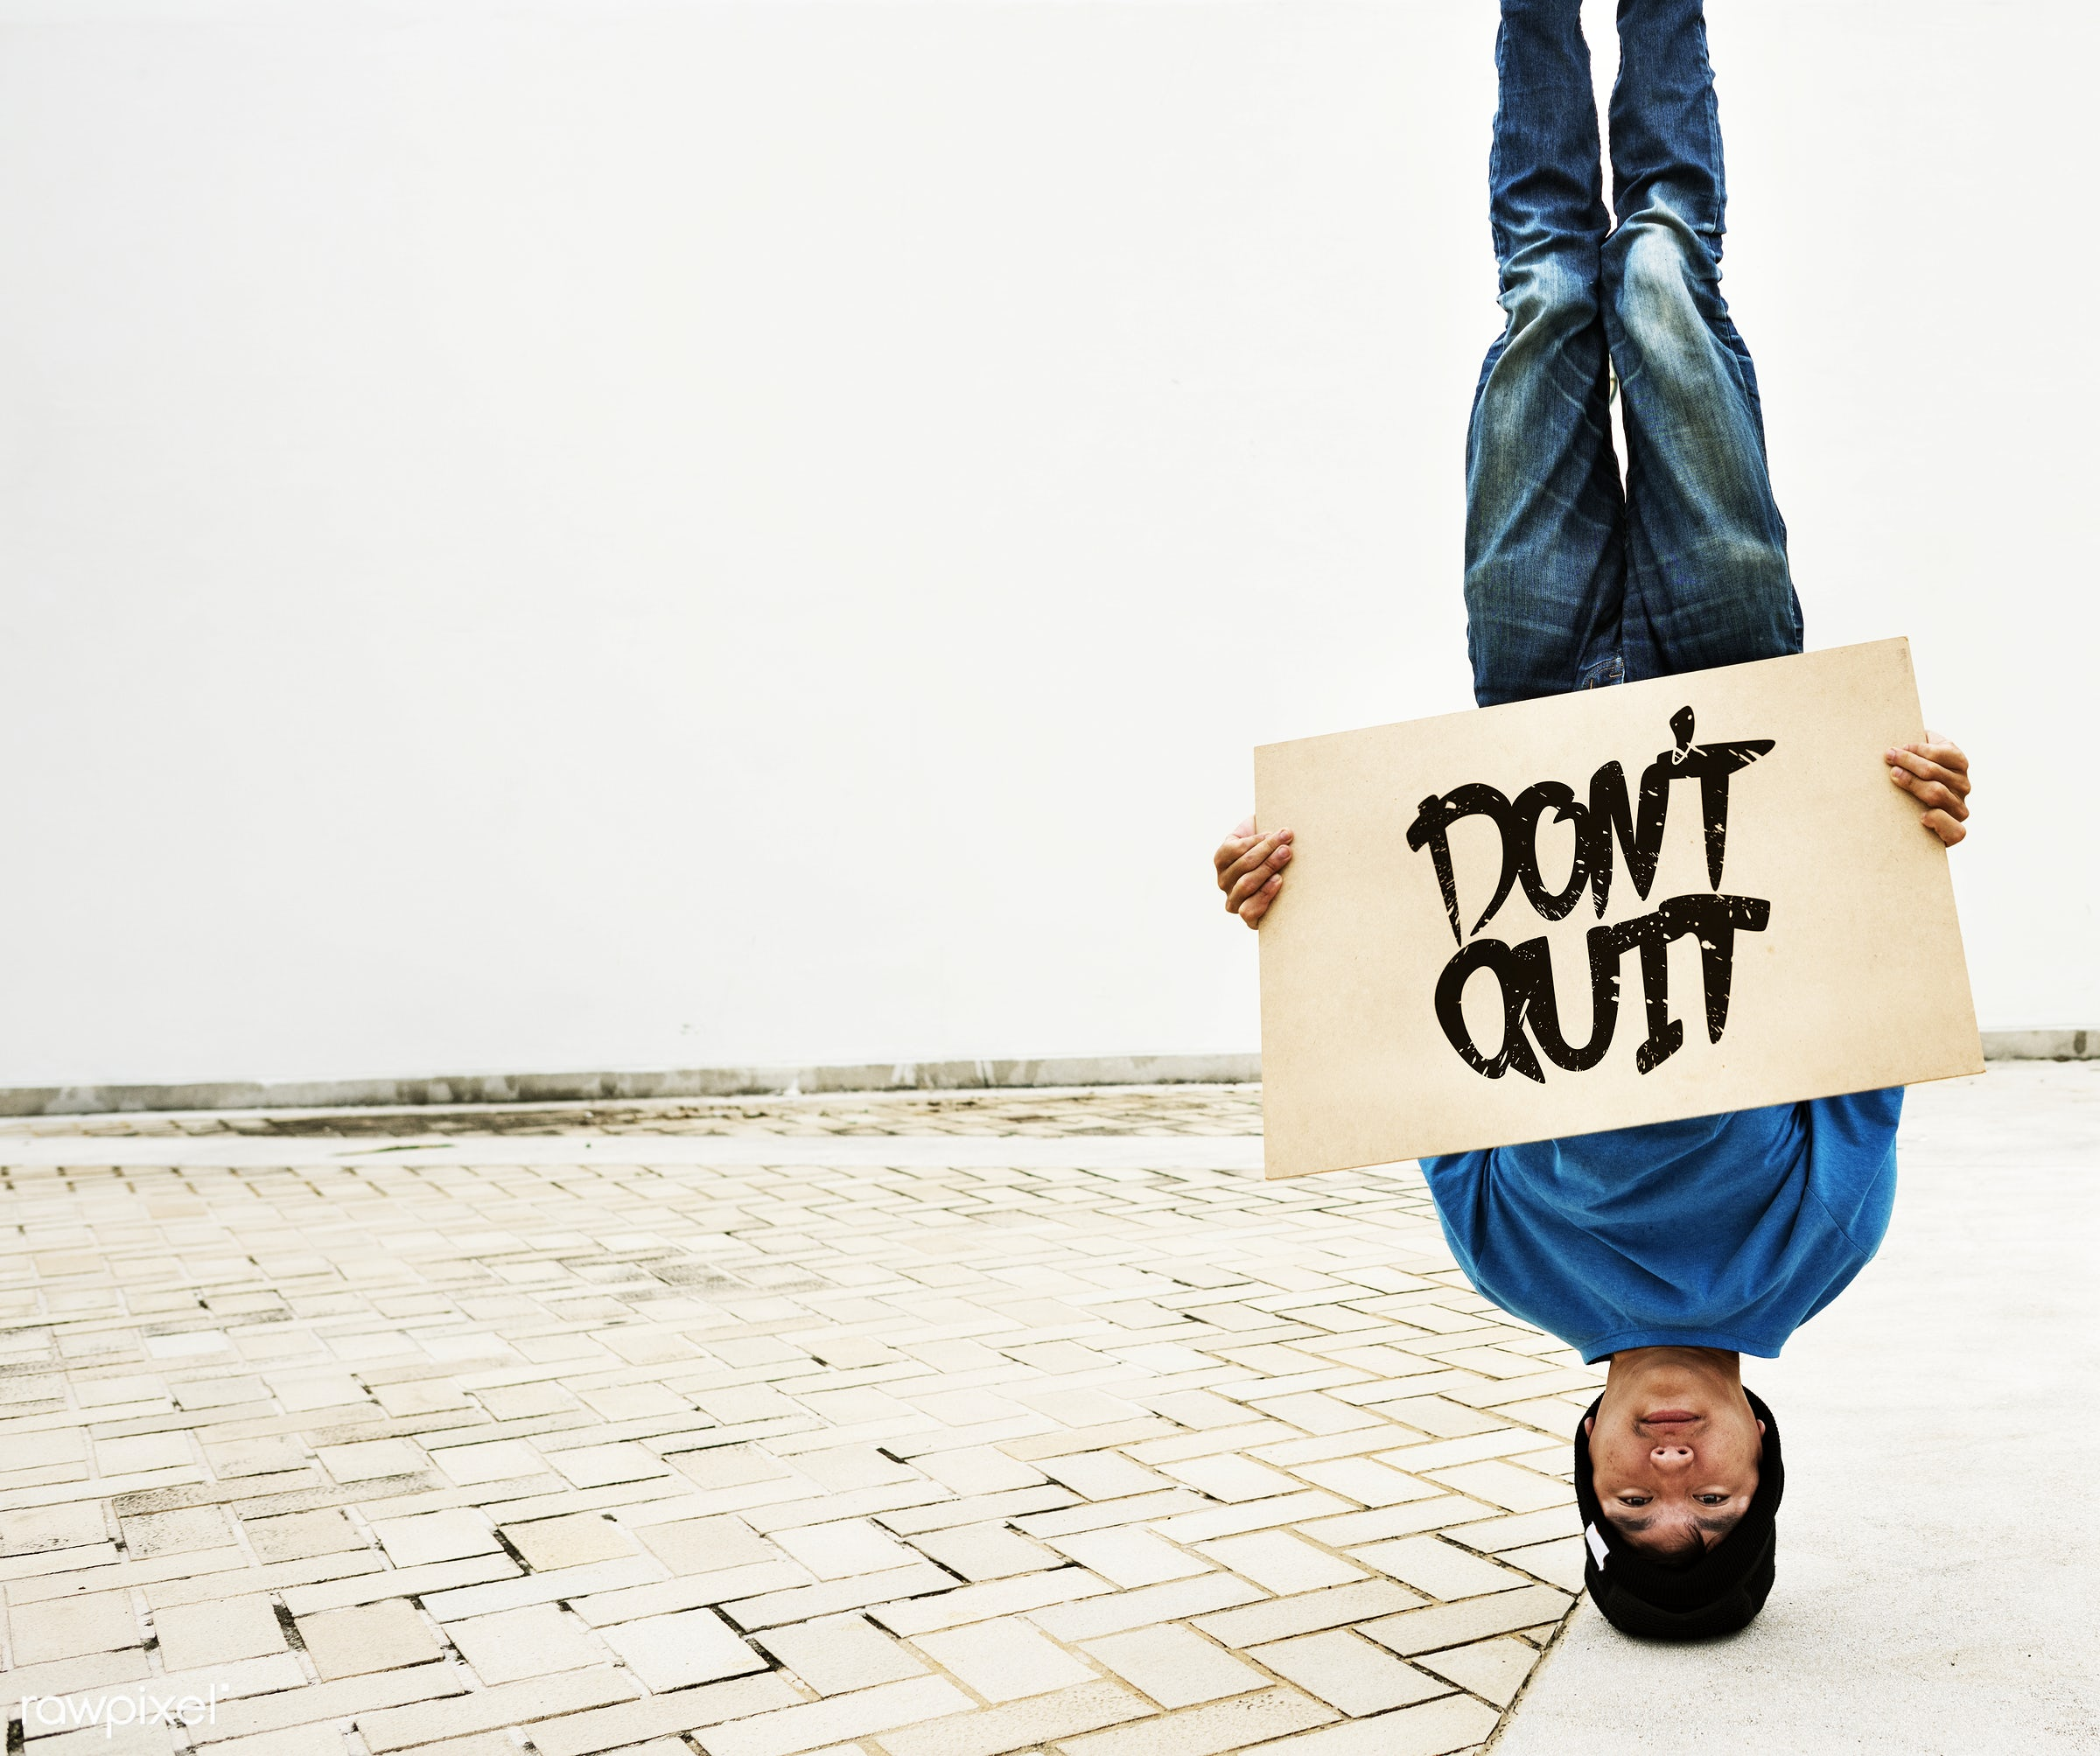 quit, announcement, asian, believe in yourself, boy, breakdance, breakdancing, cheerful, dance, dancing, do it, don't, don't...